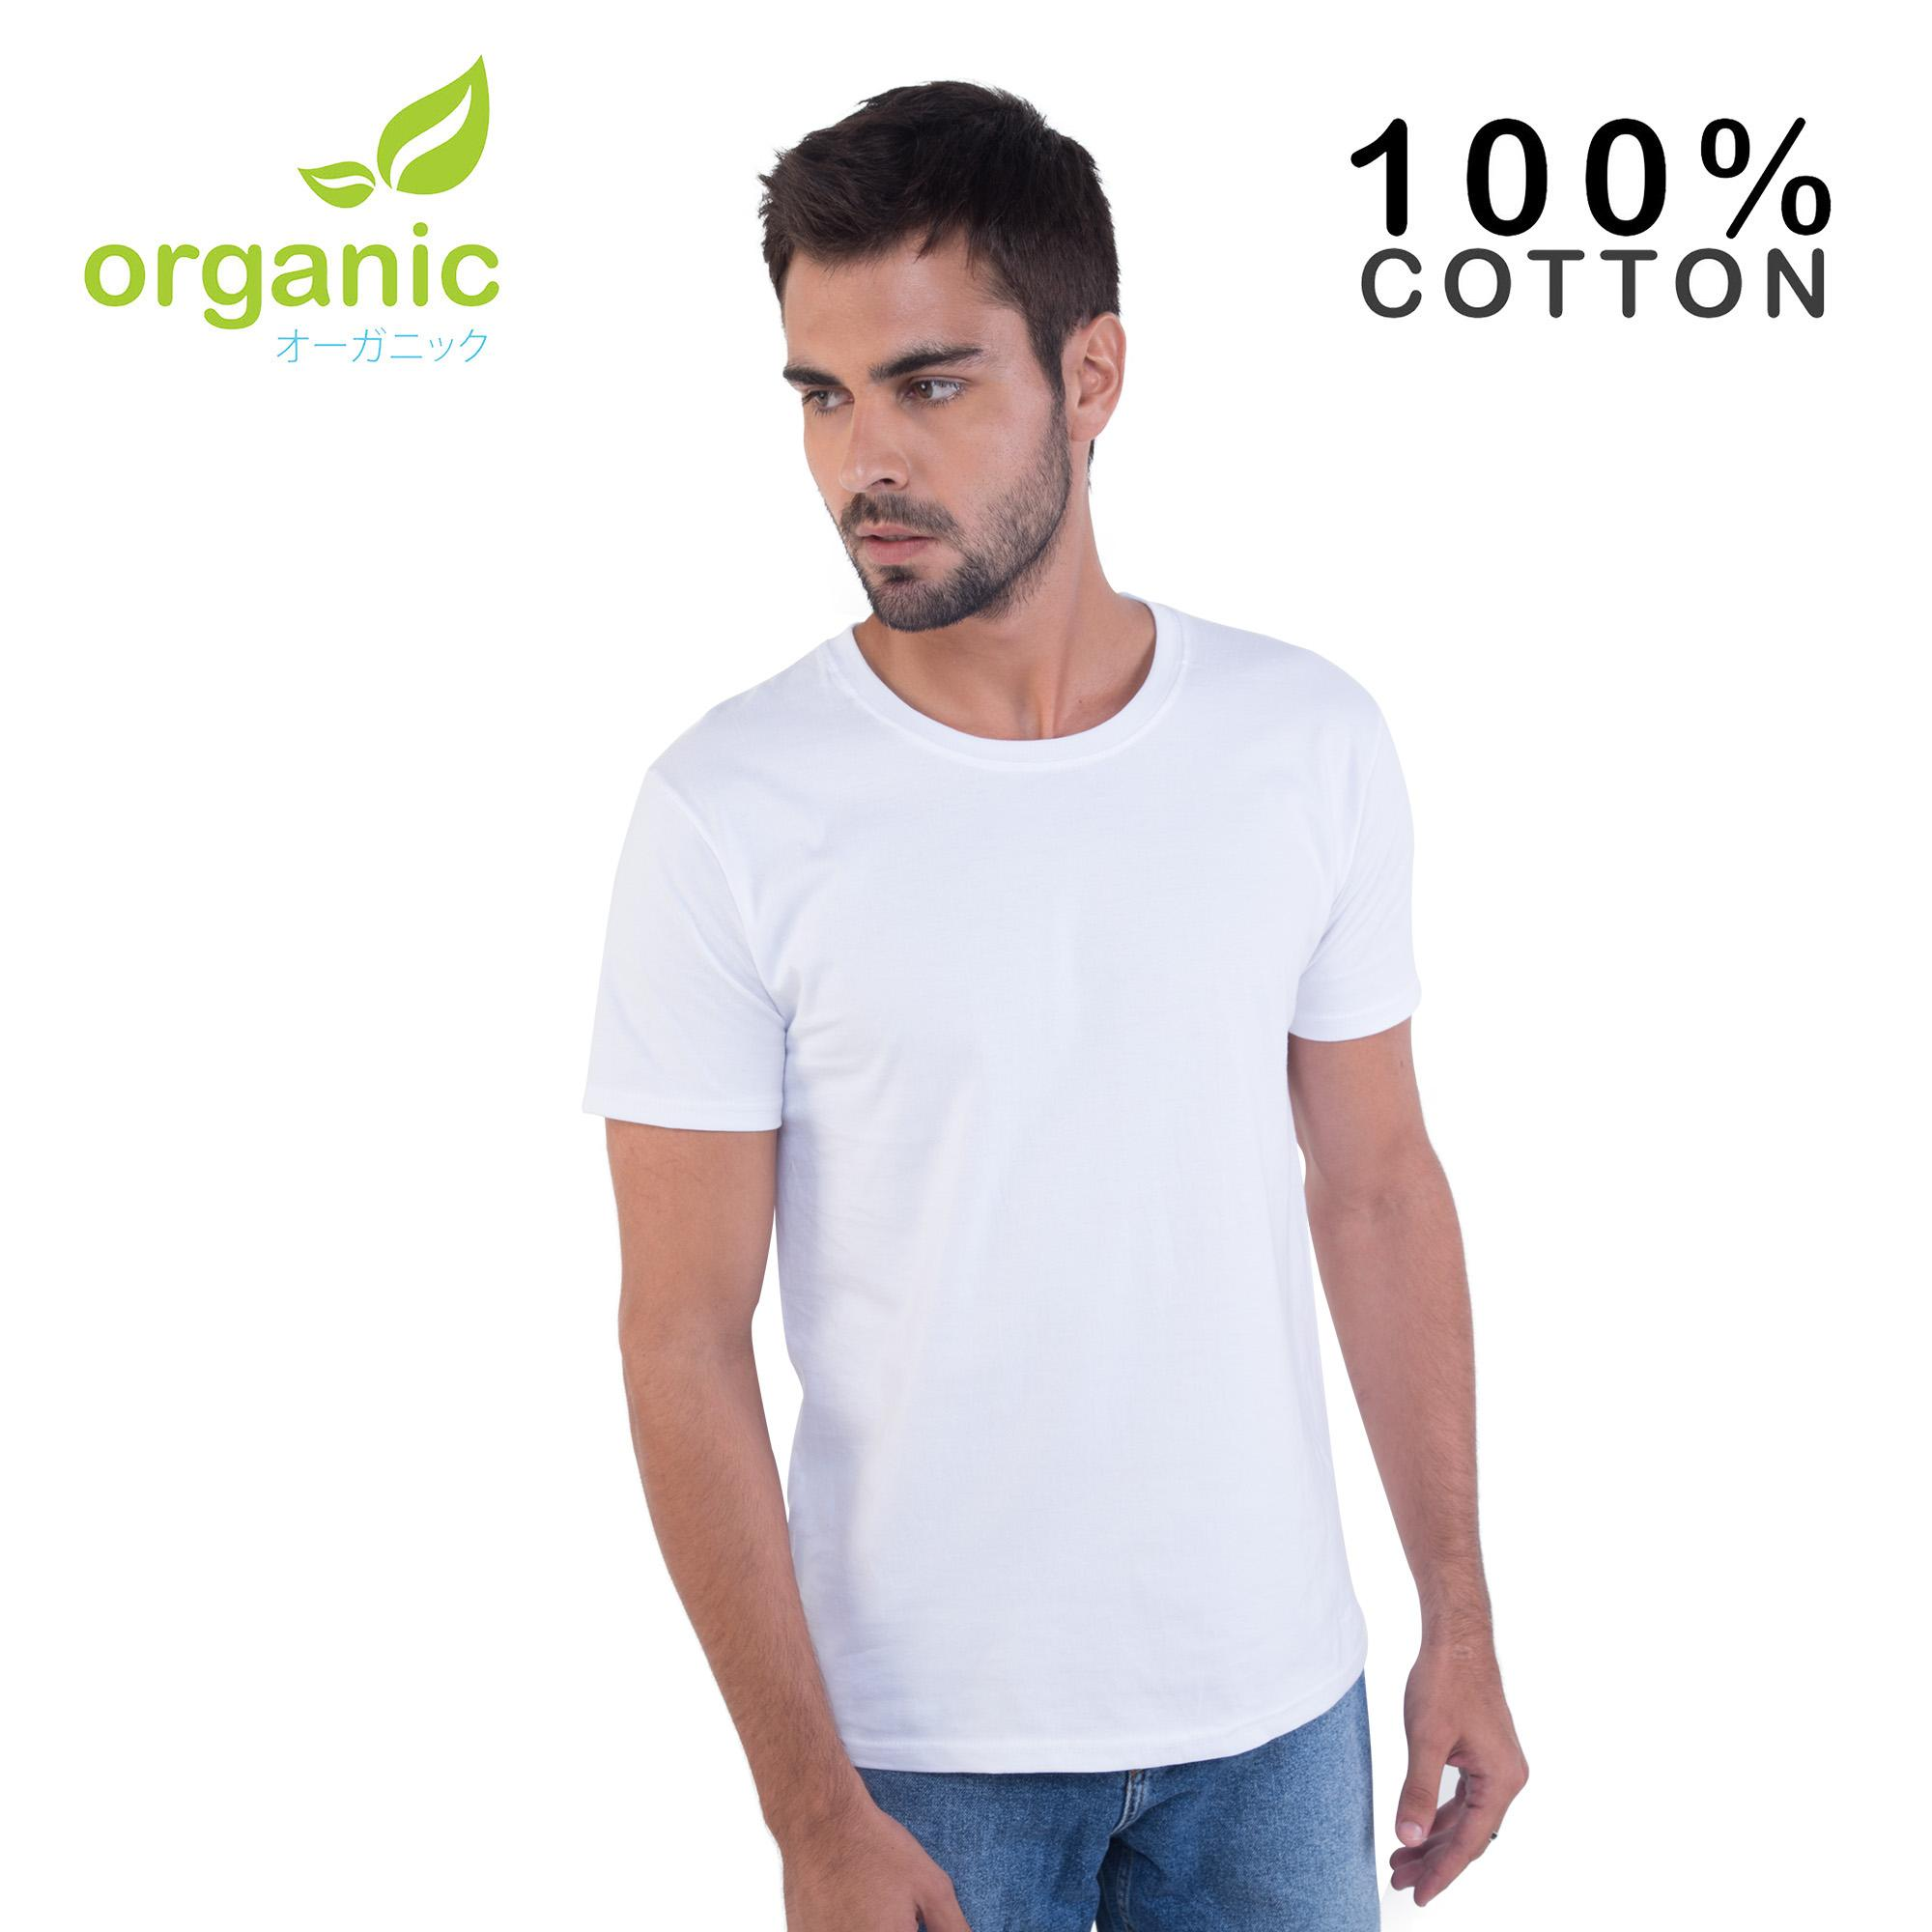 ad013ecbf009ca Organic Mens 100% Cotton Round neck Tees t shirt tshirt shirts tshirts tee tops  top